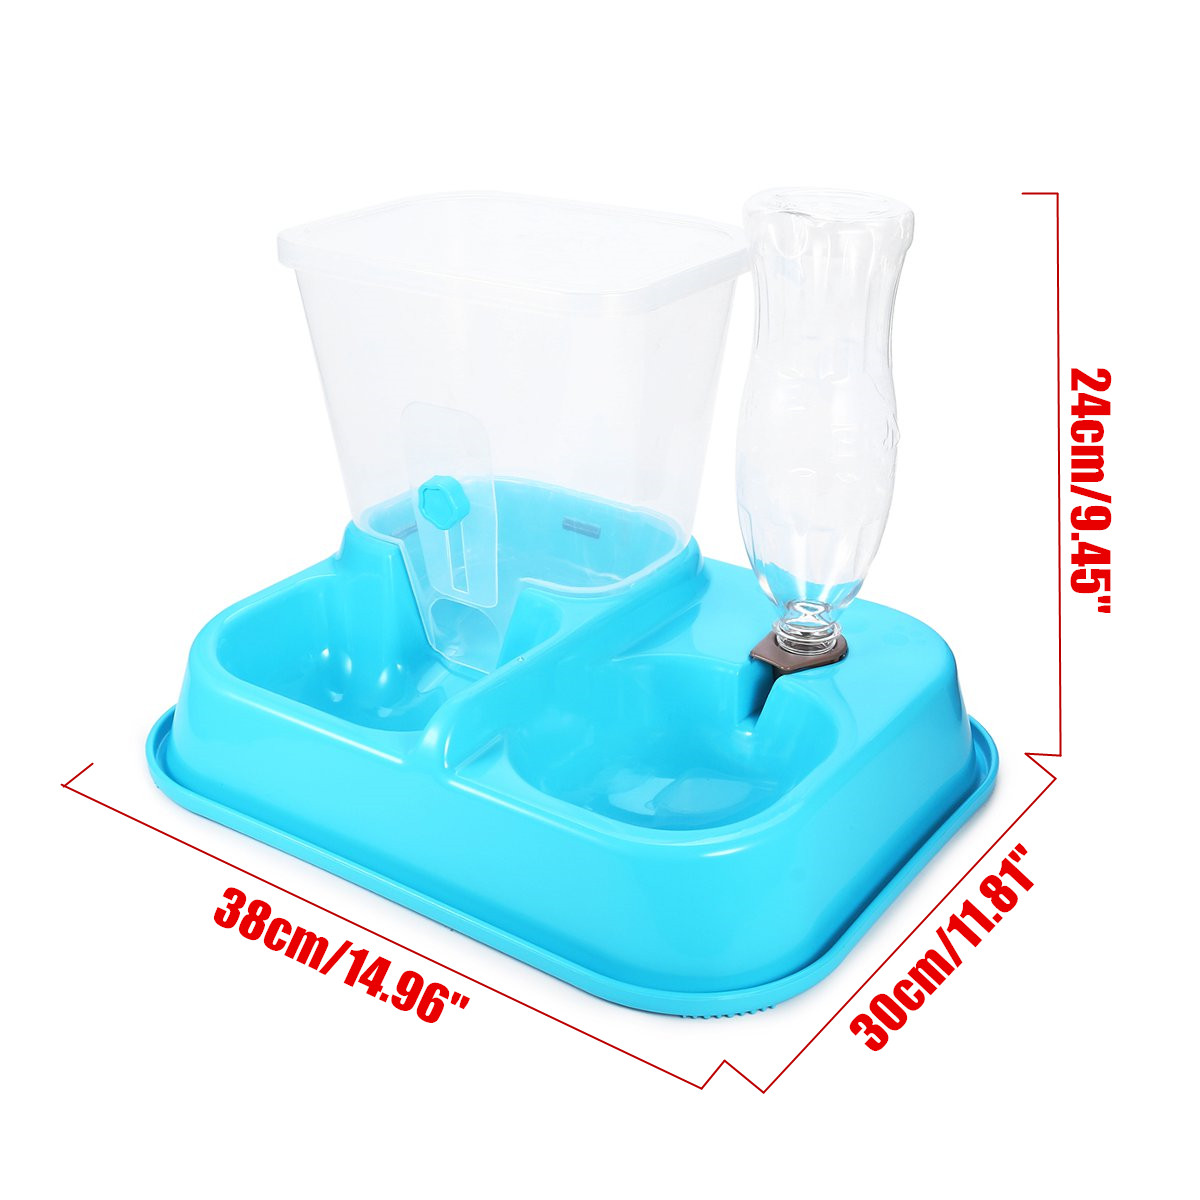 2 in 1 Automatic Pet Food Drink Dispenser Dog Cat Feeder Water Station Bowl Dish Beverage Dispenser